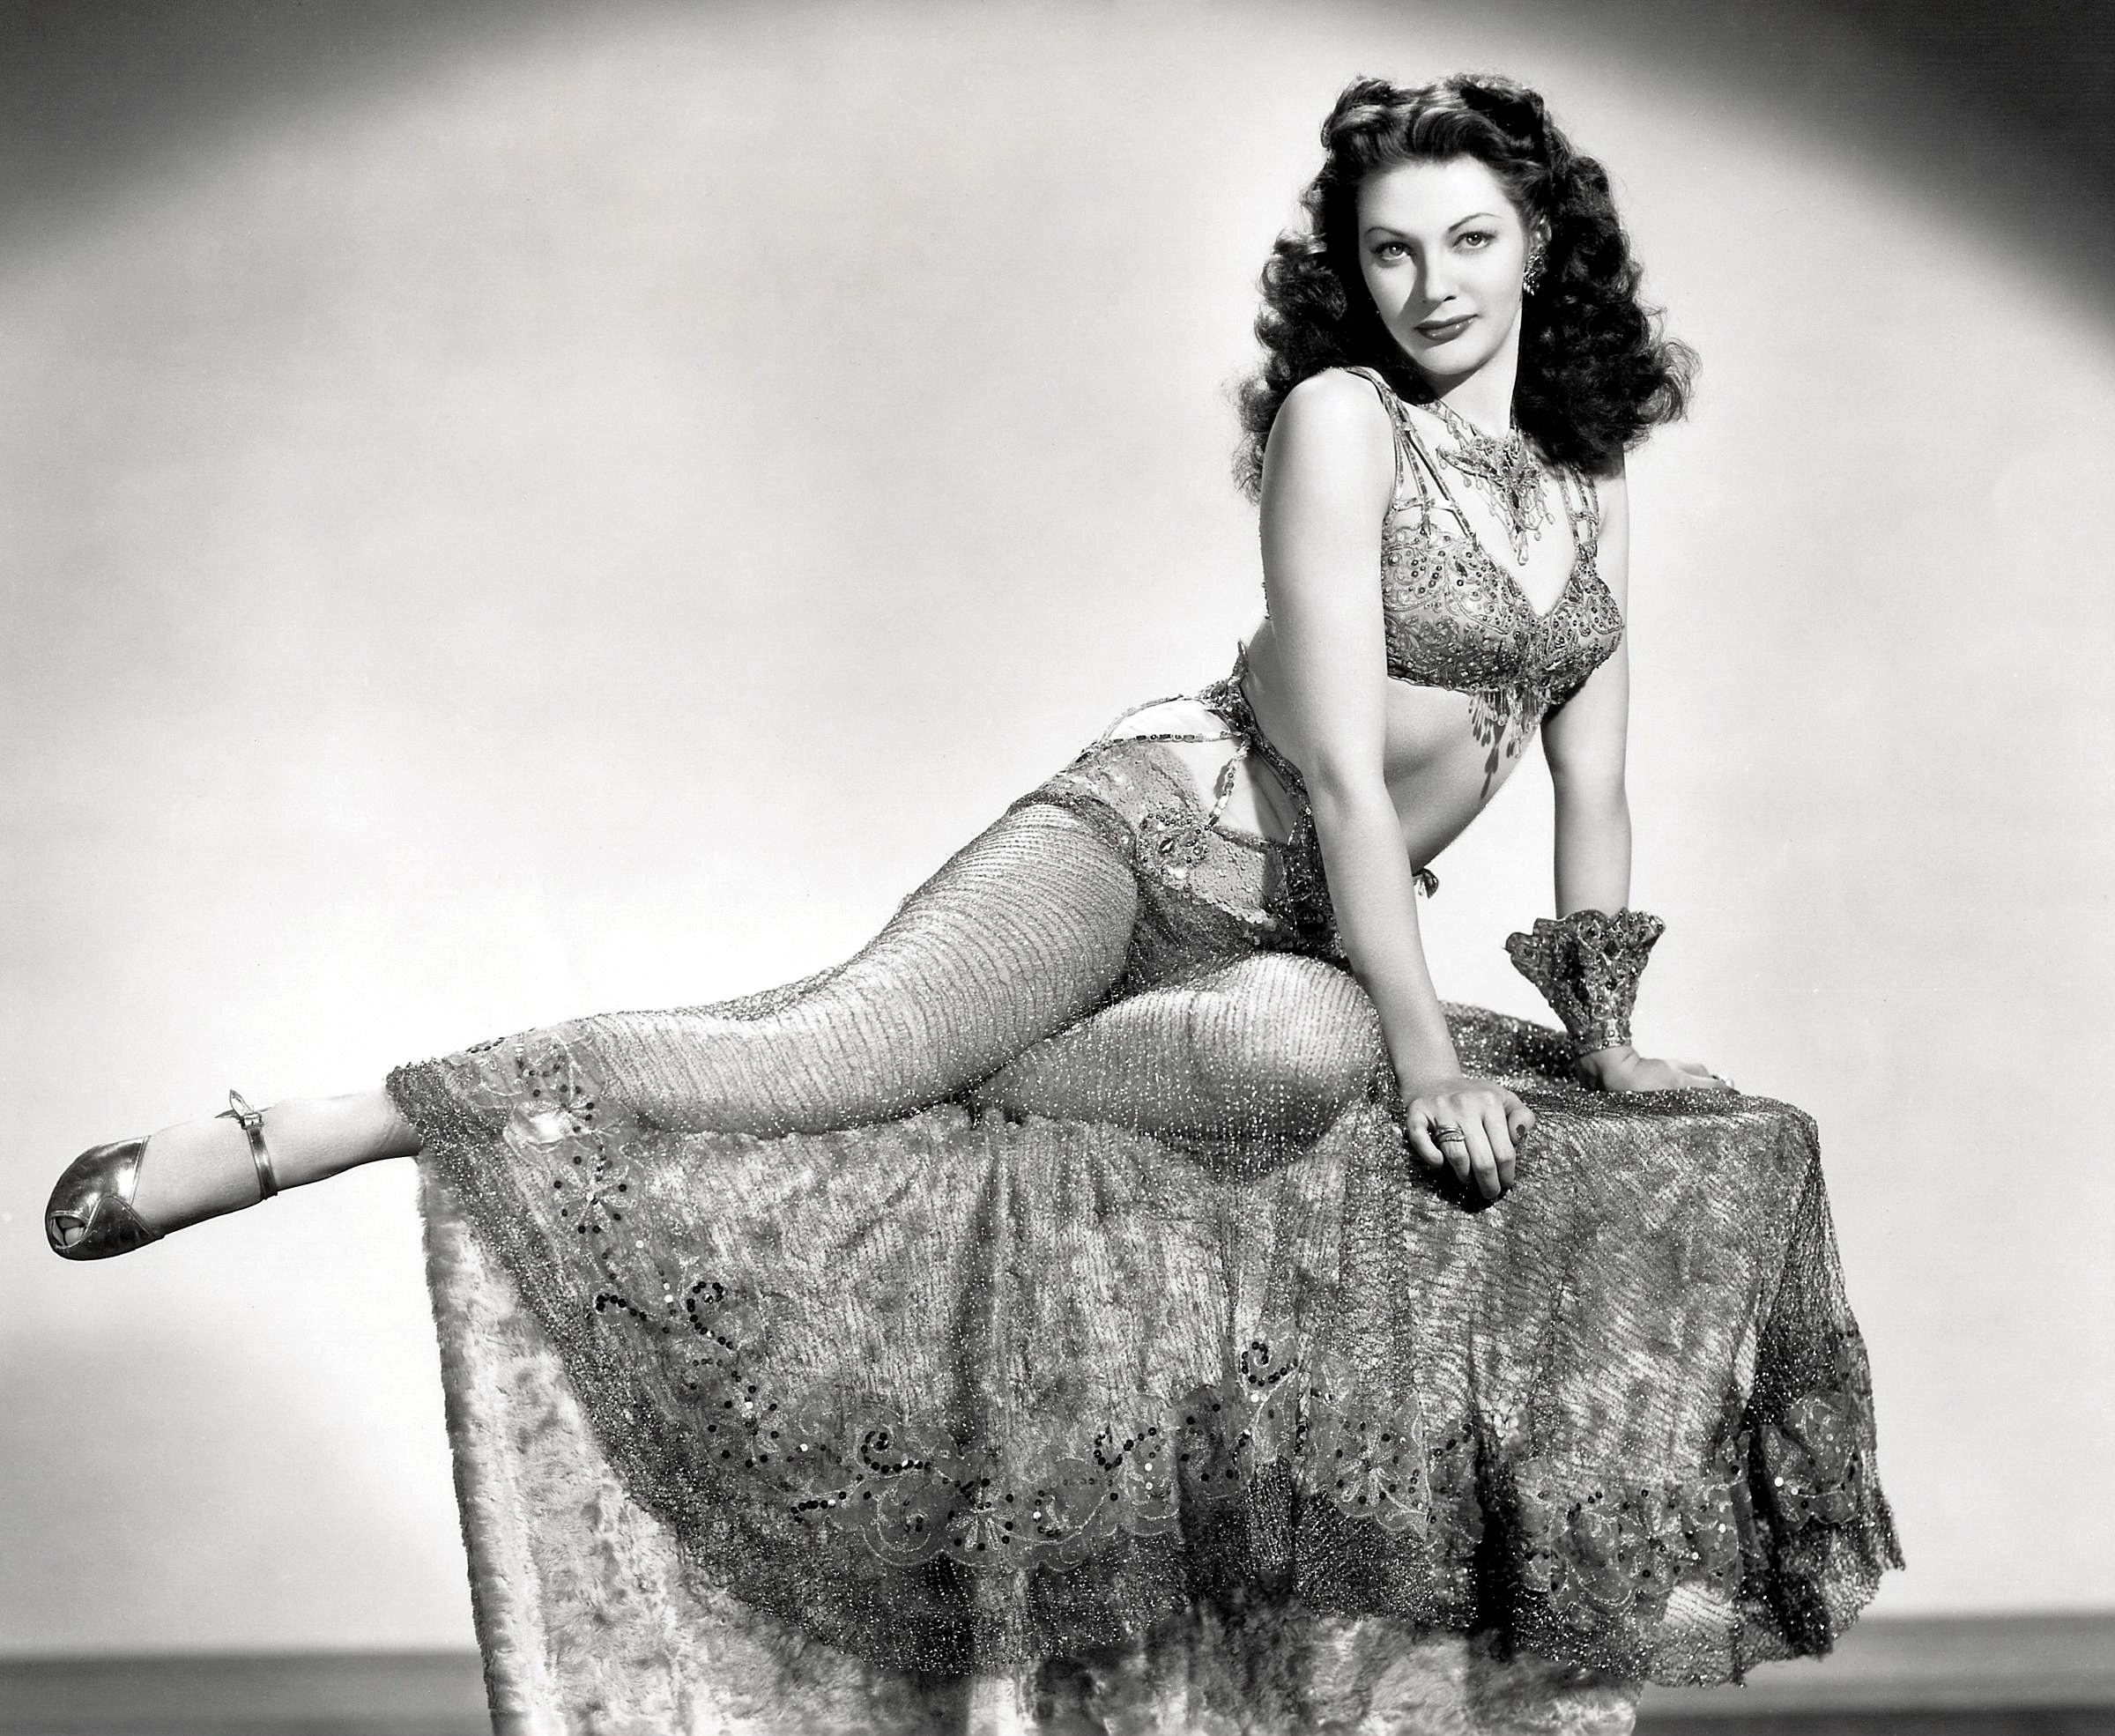 Yvonne de carlo HD Wallpaper